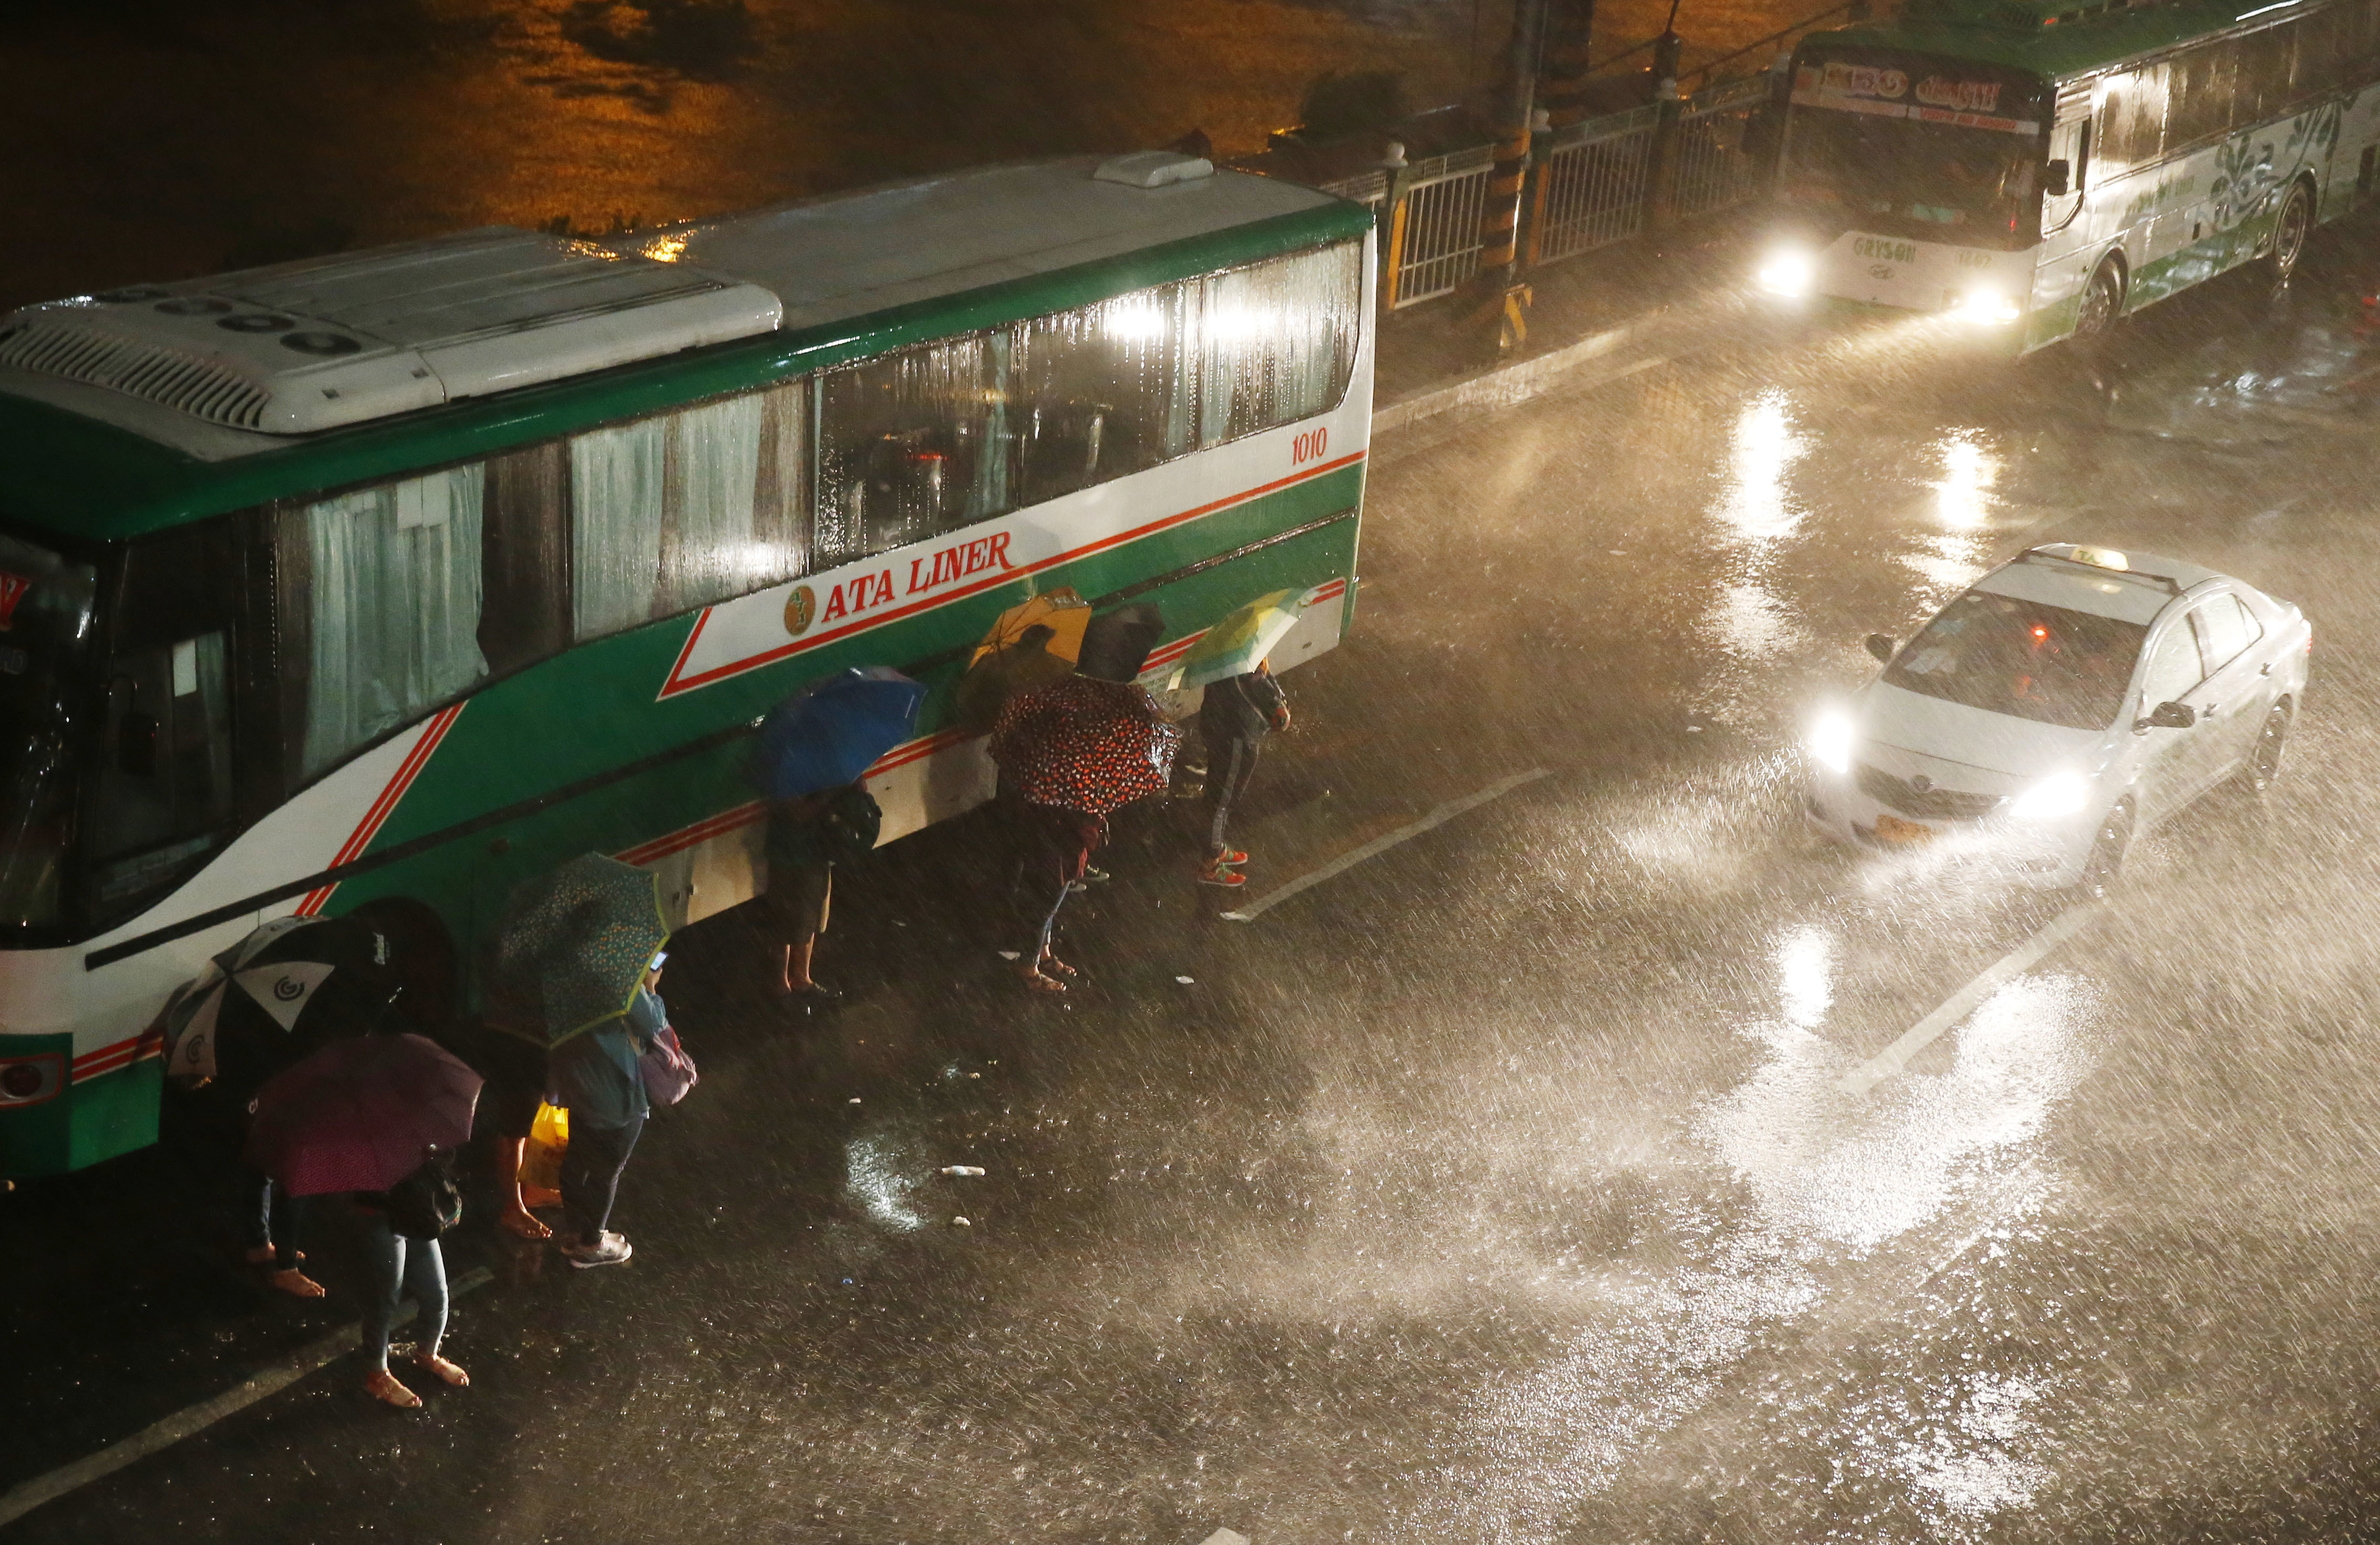 Commuters brave the rain and strong winds brought about by Typhoon Mangkhut, which barreled into northeastern Philippines before dawn, Sept. 15, 2018, in Manila, Philippines. Typhoon Mangkhut, the strongest typhoon to hit the country this year, slamm...